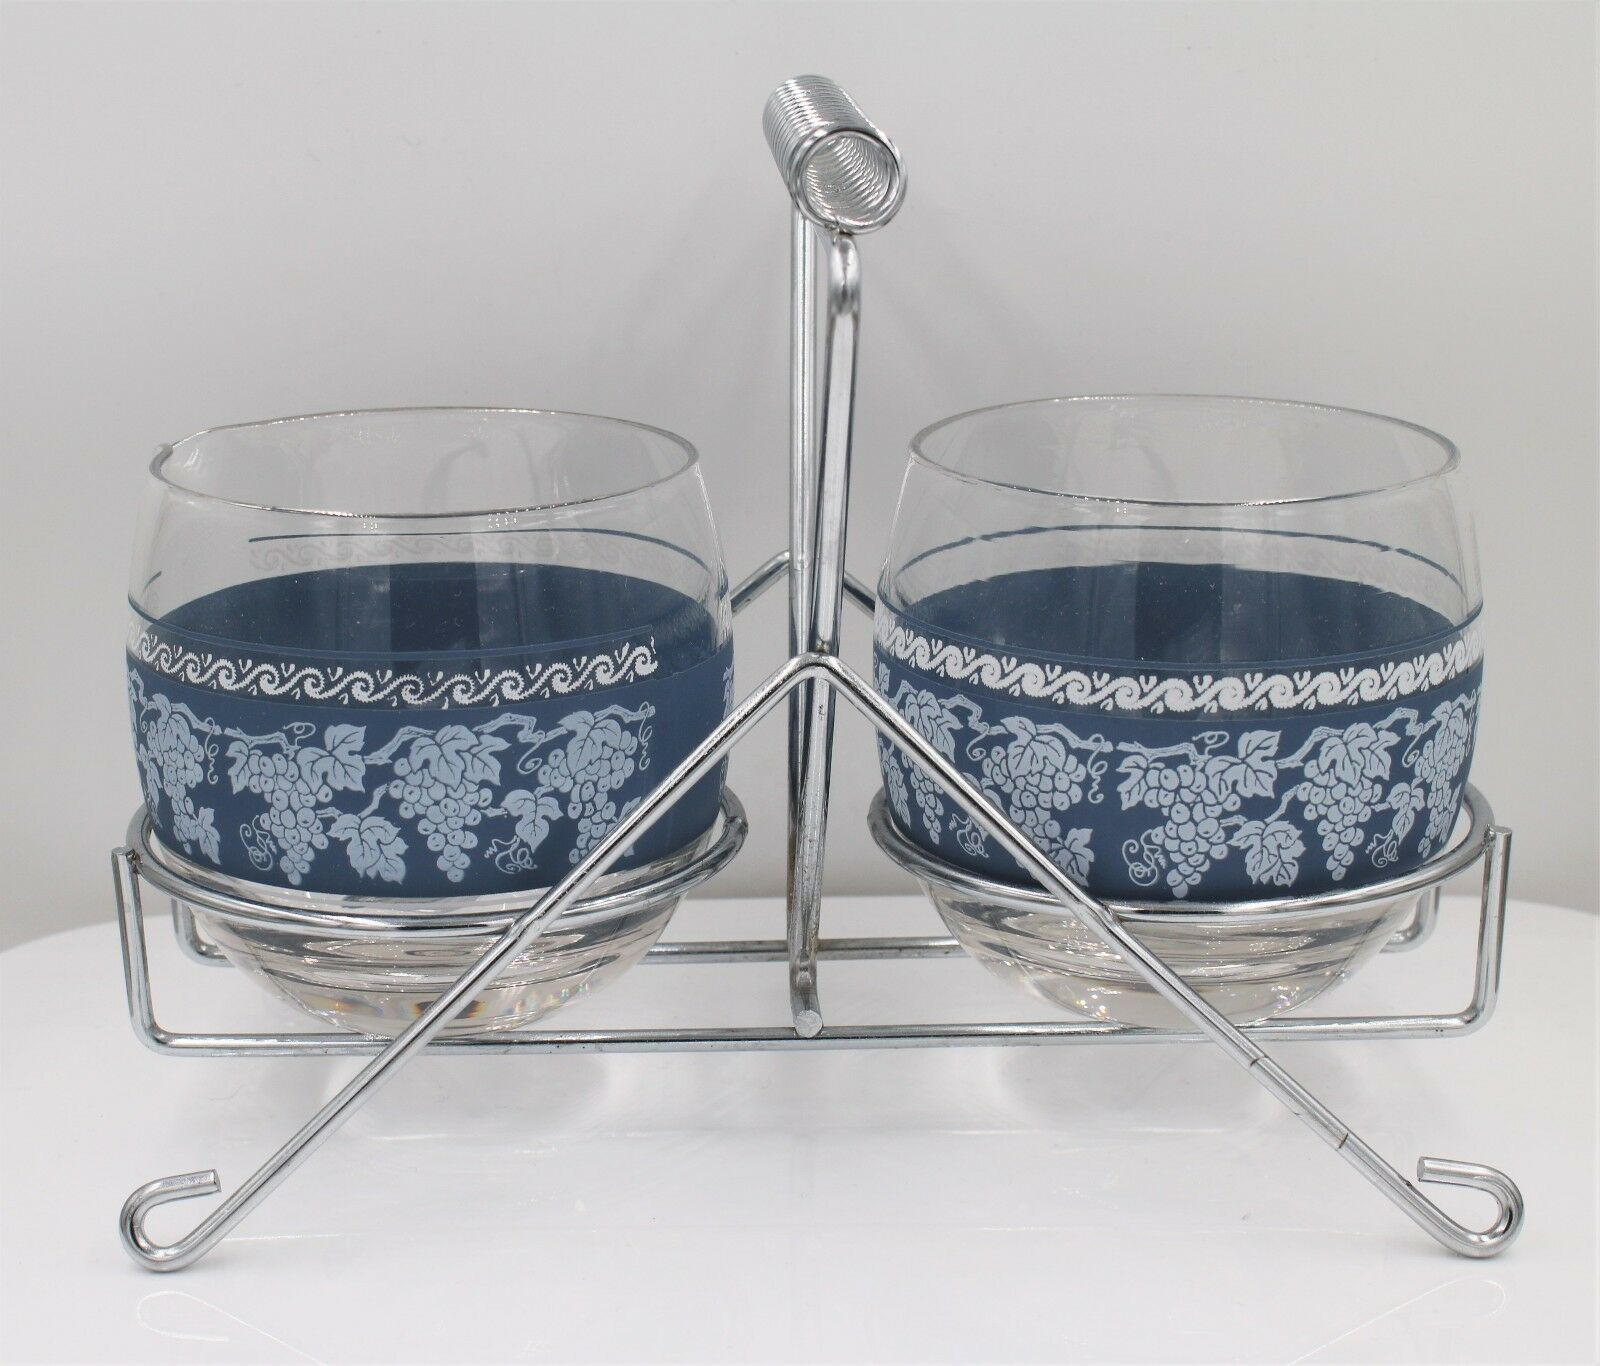 Primary image for Vintage Mid Century Glass Sugar Creamer Condiment Caddy Set with Blue Ivy Trim